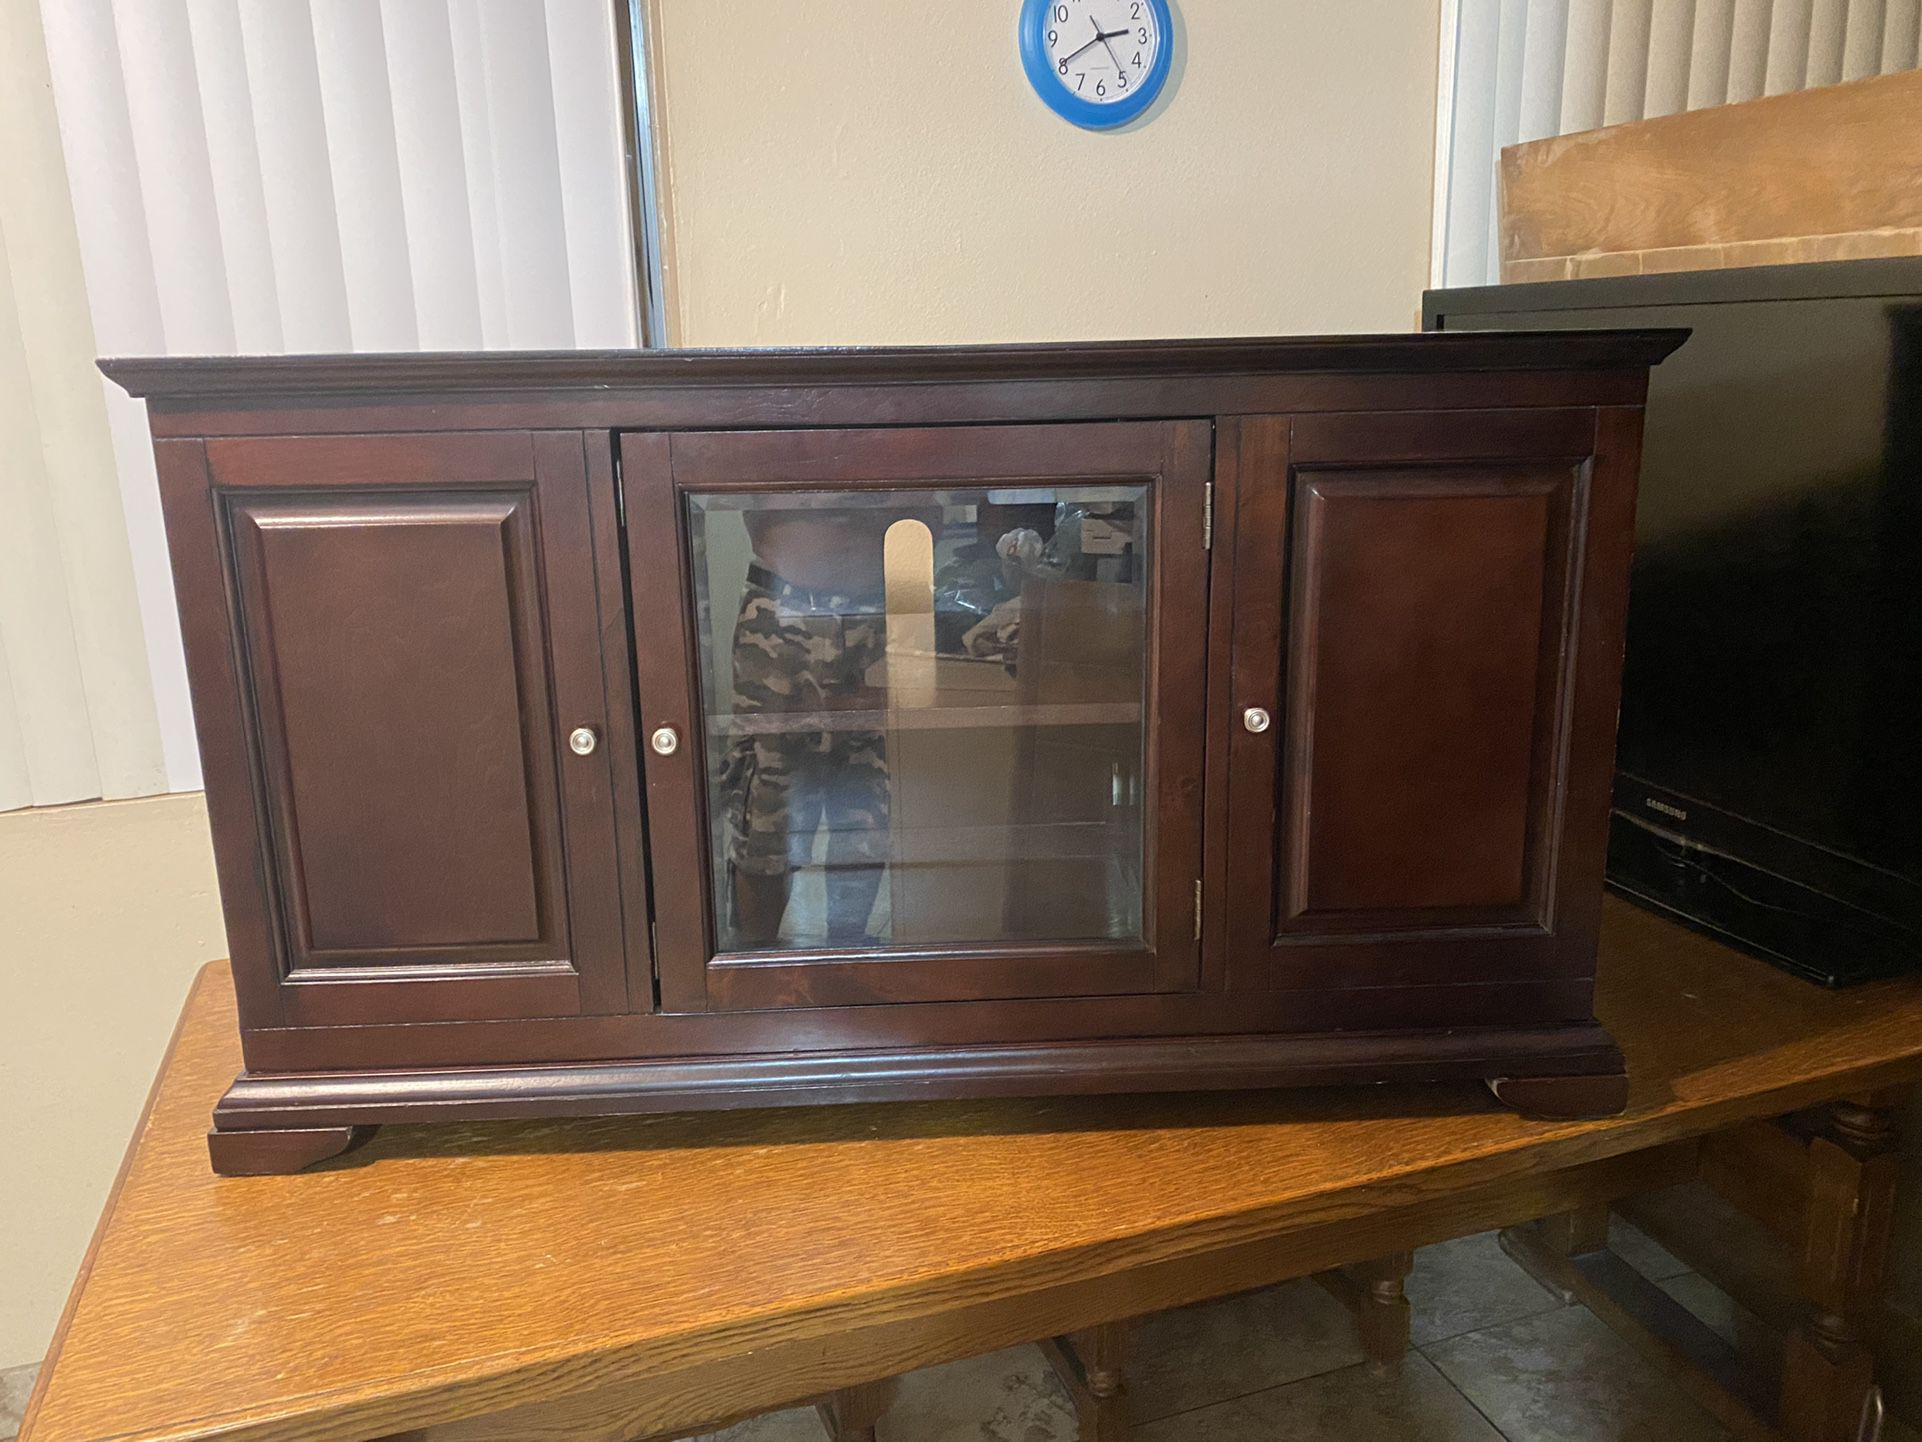 Cherrywood cabinet (real Wood) And with shelves on each end and middle. Check out my other items on my profile page